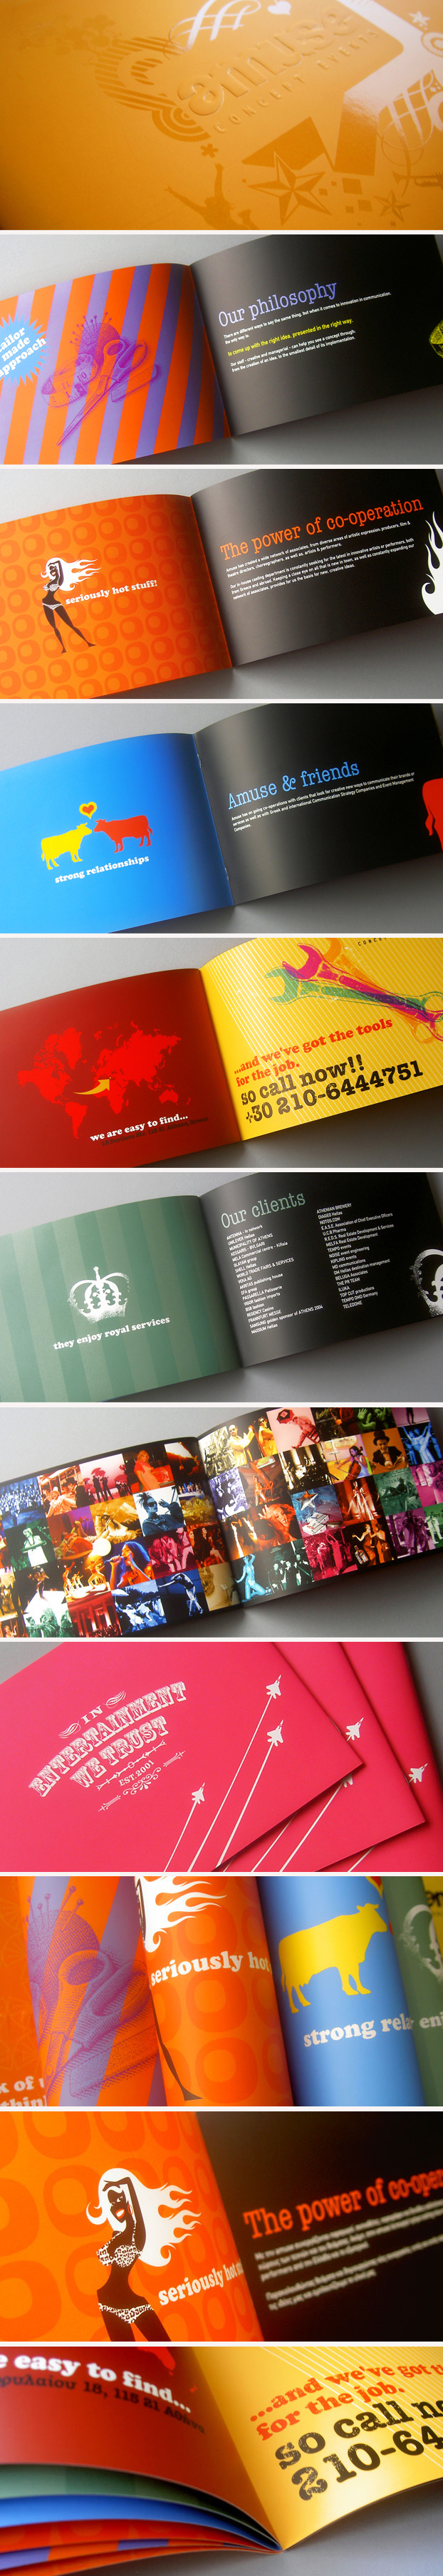 amuse in1 25 Incredible Examples of Brochure and Catalog Design